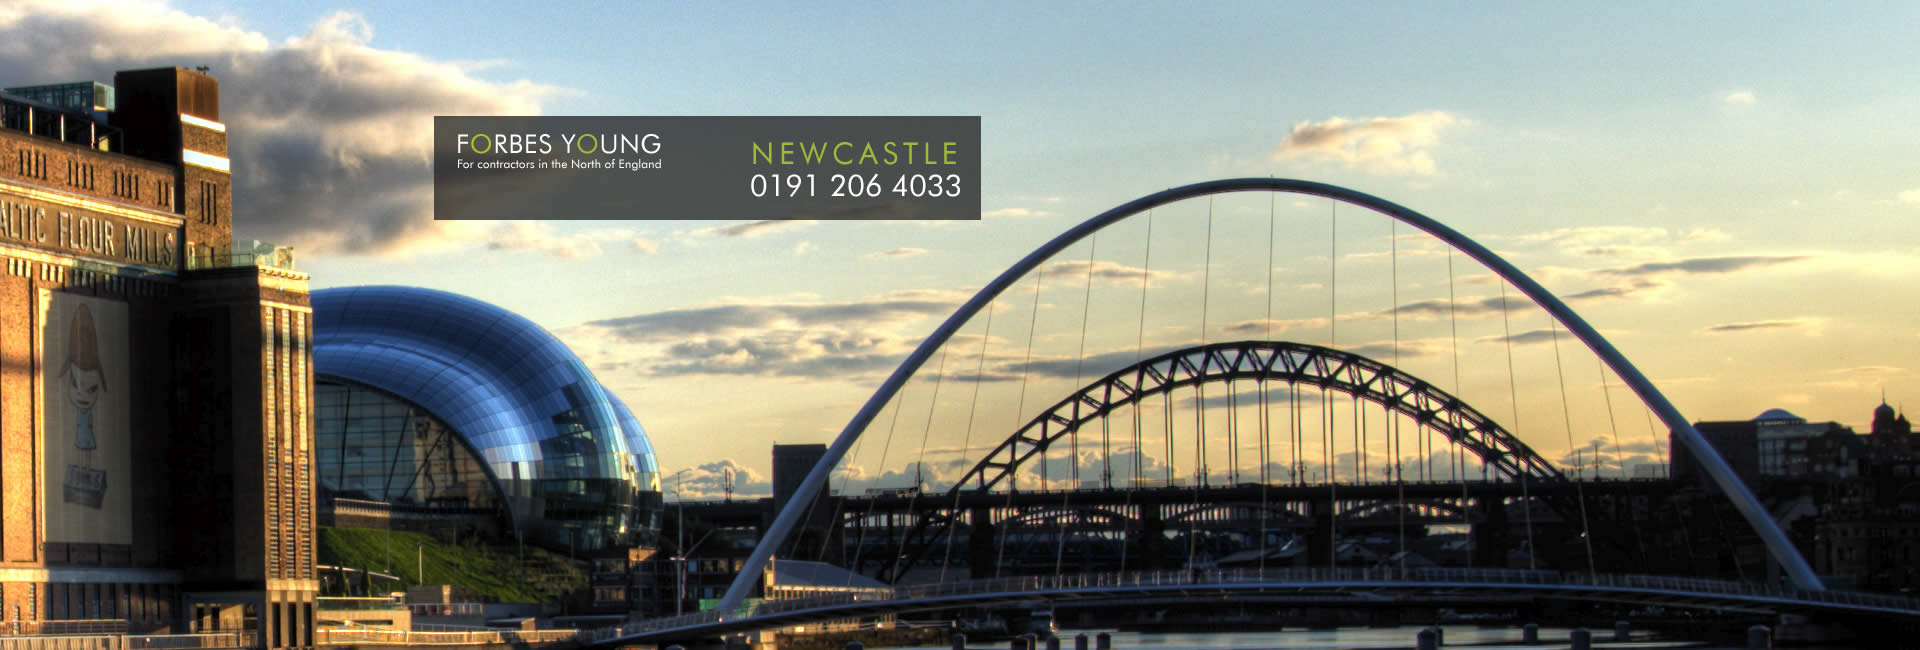 Forbes Young Newcastle Contractor Accountants